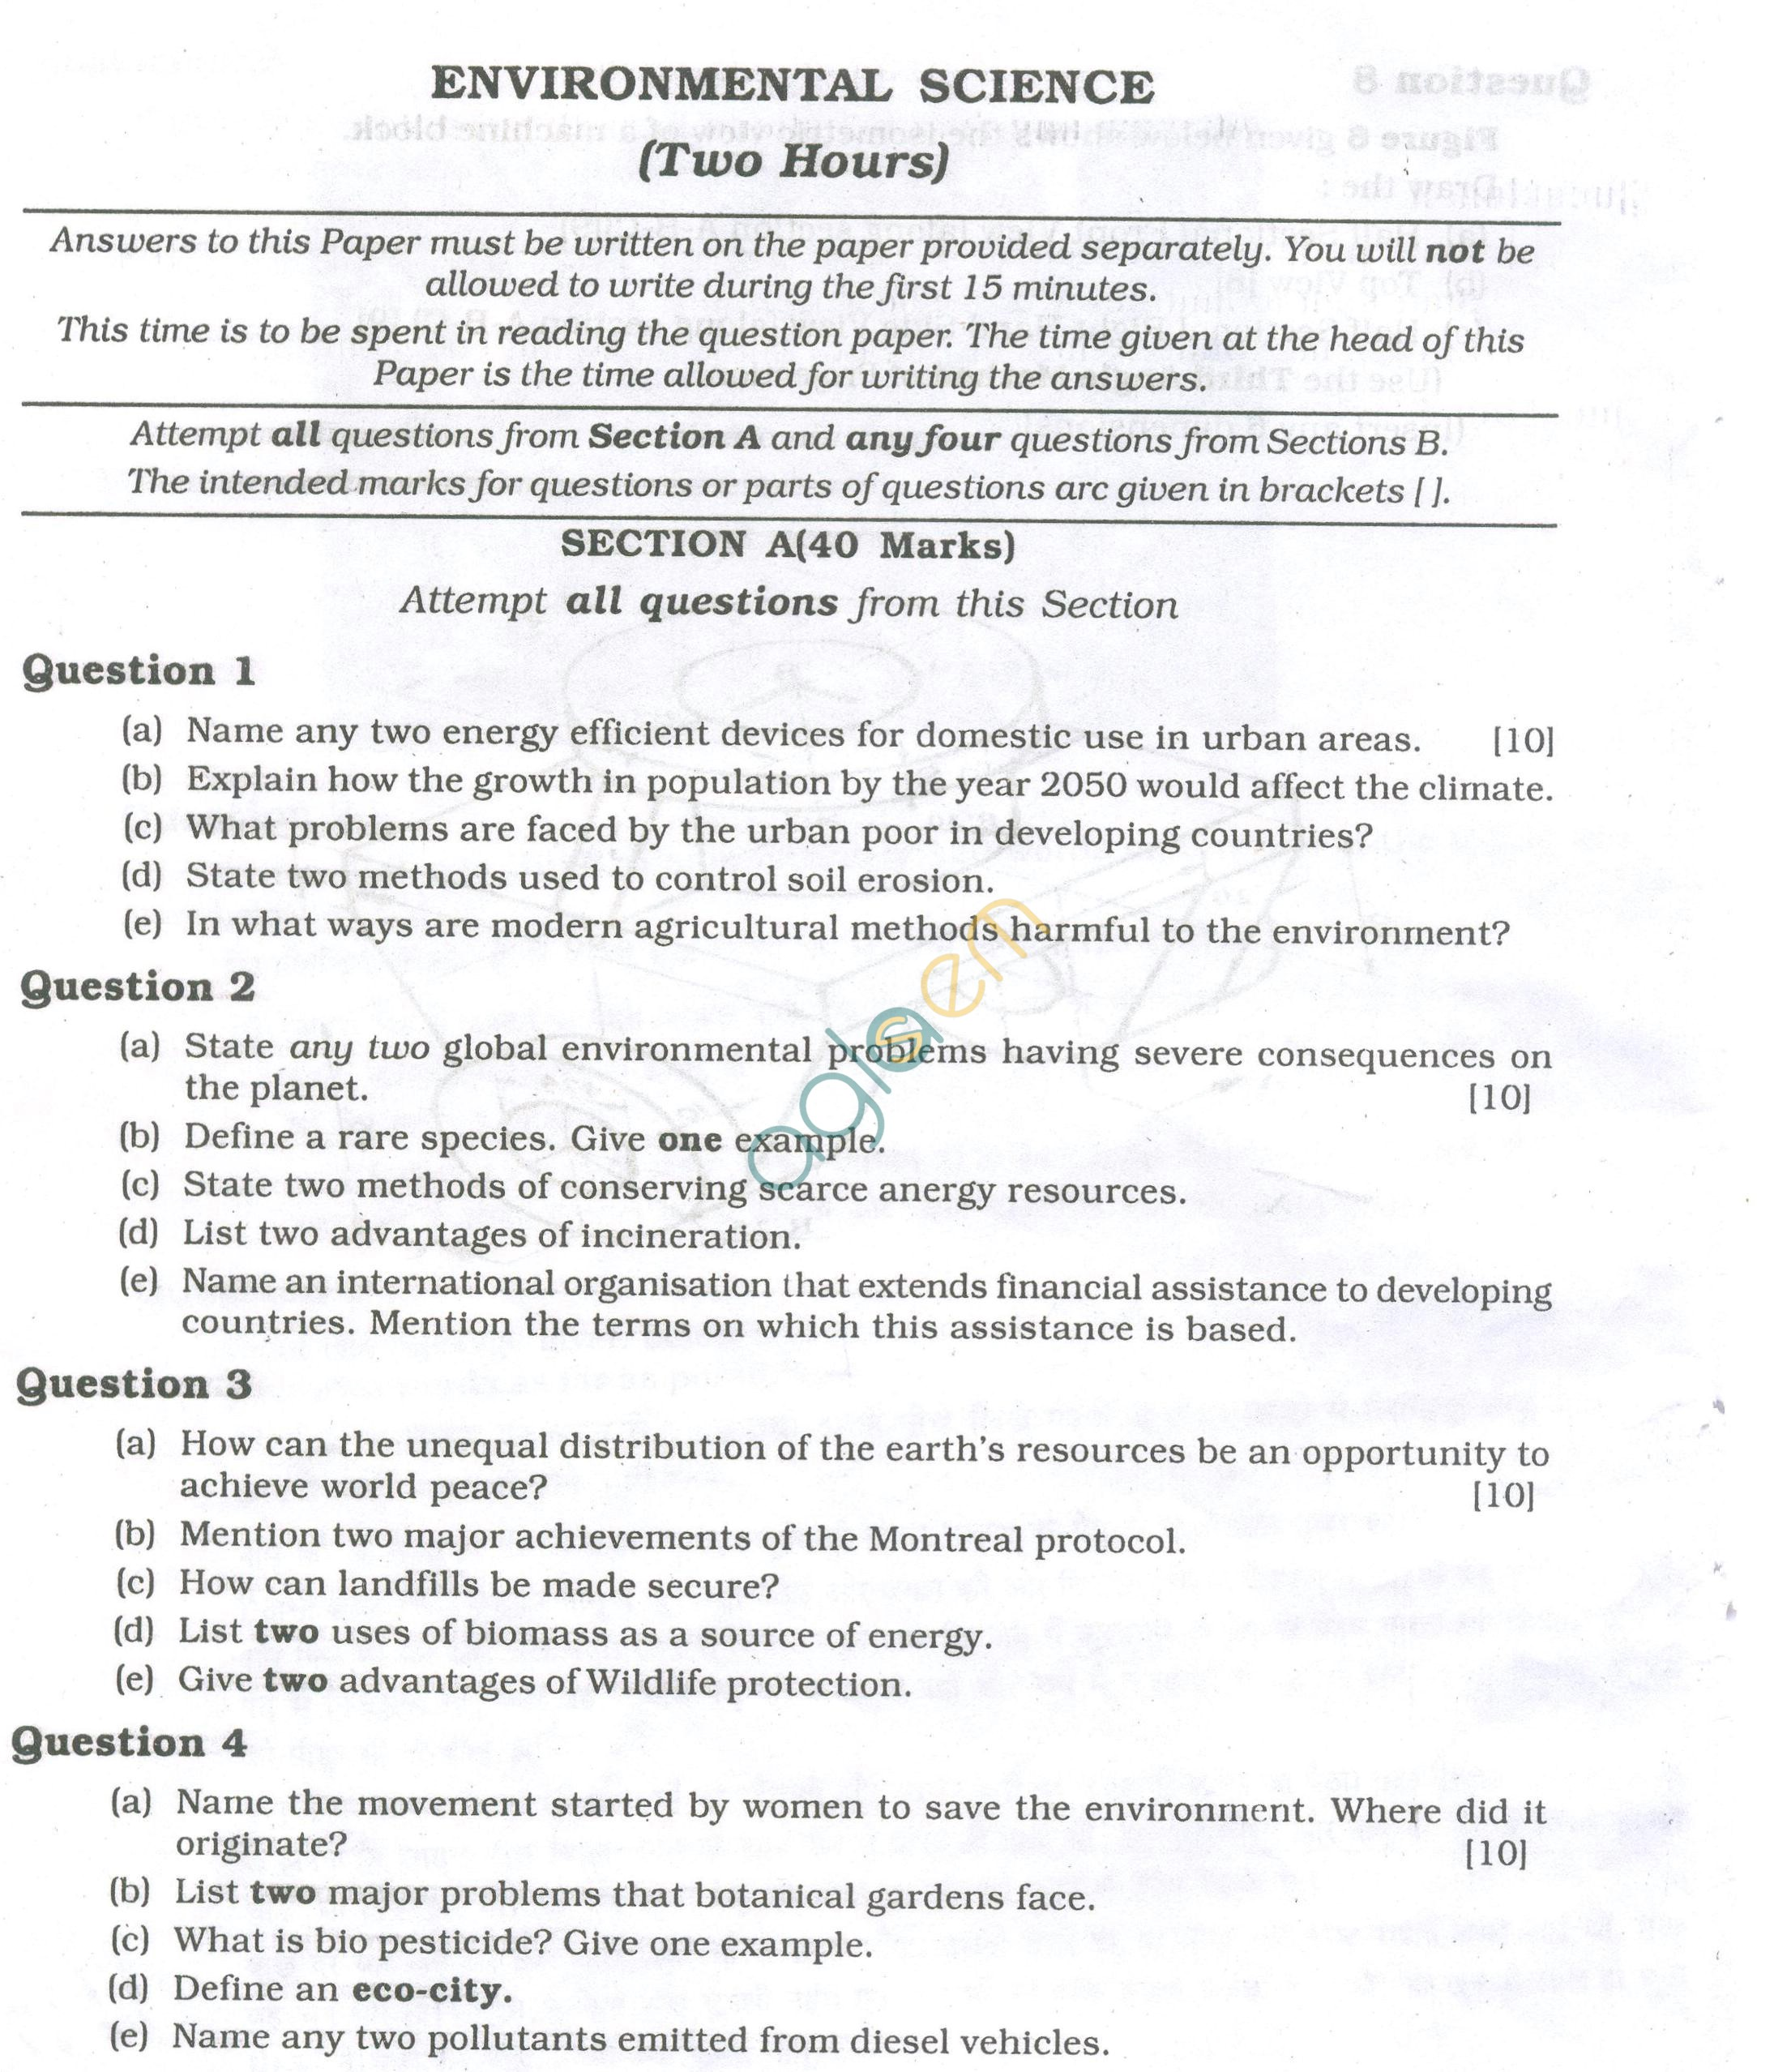 ICSE Question Papers 2013 for Class 10 - Environmental Science